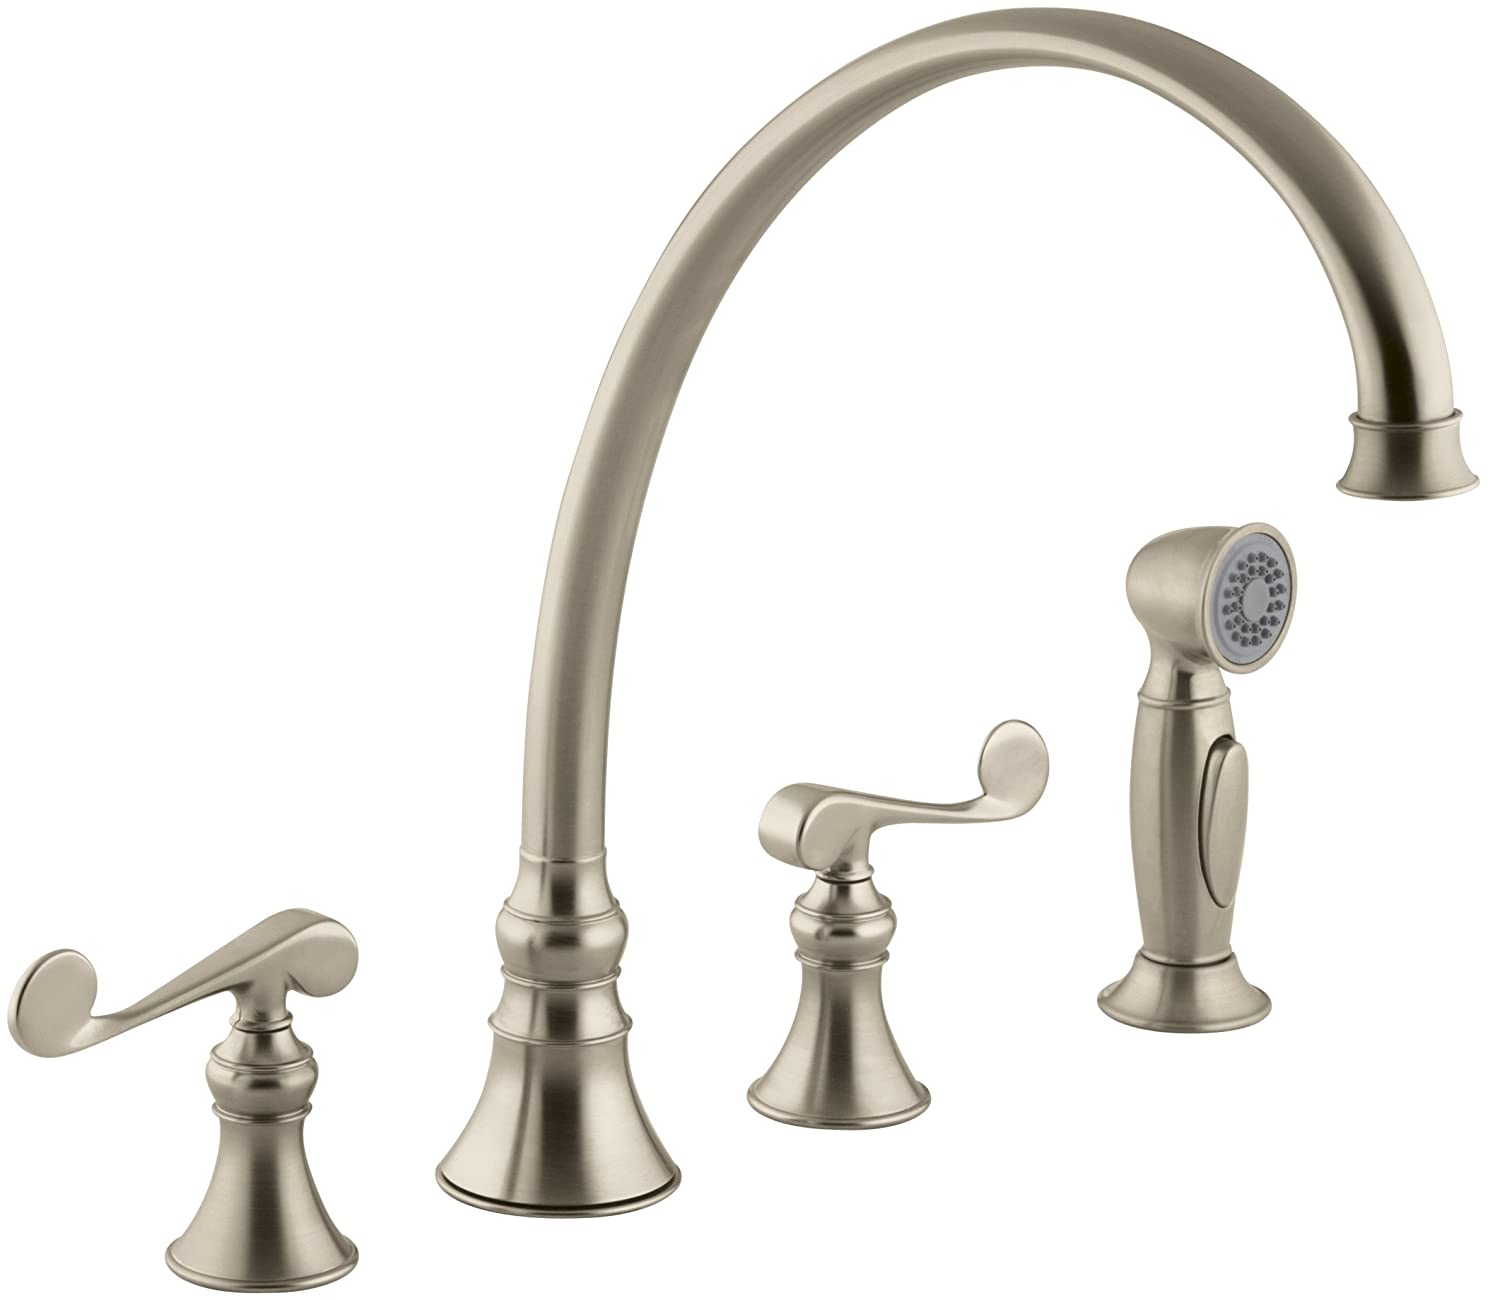 KOHLER K 4 CP Revival Kitchen Sink Faucet Polished Chrome